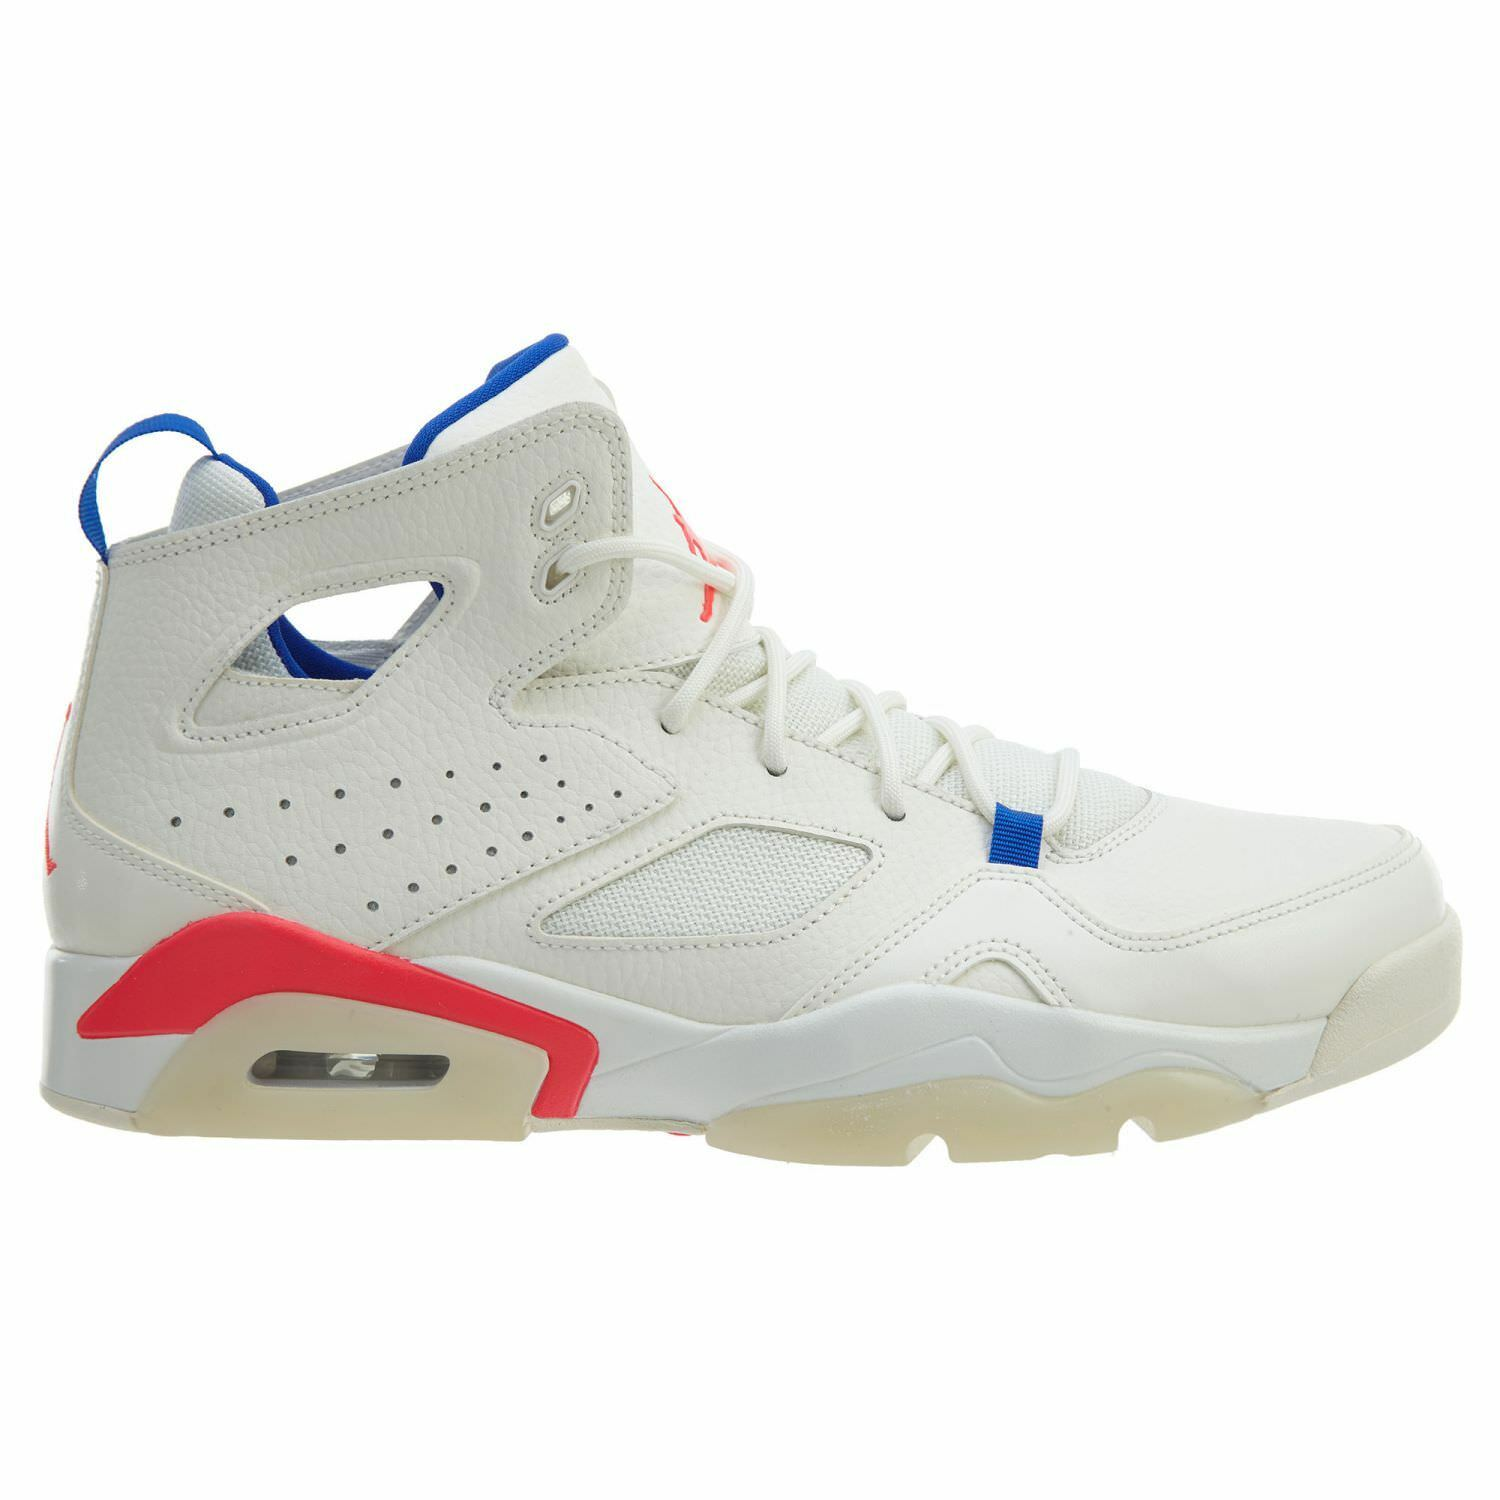 Jordan Flight Club '91 Uomo 555475-125 Sail blu blu blu rosa Basketball scarpe Dimensione 12 d04085